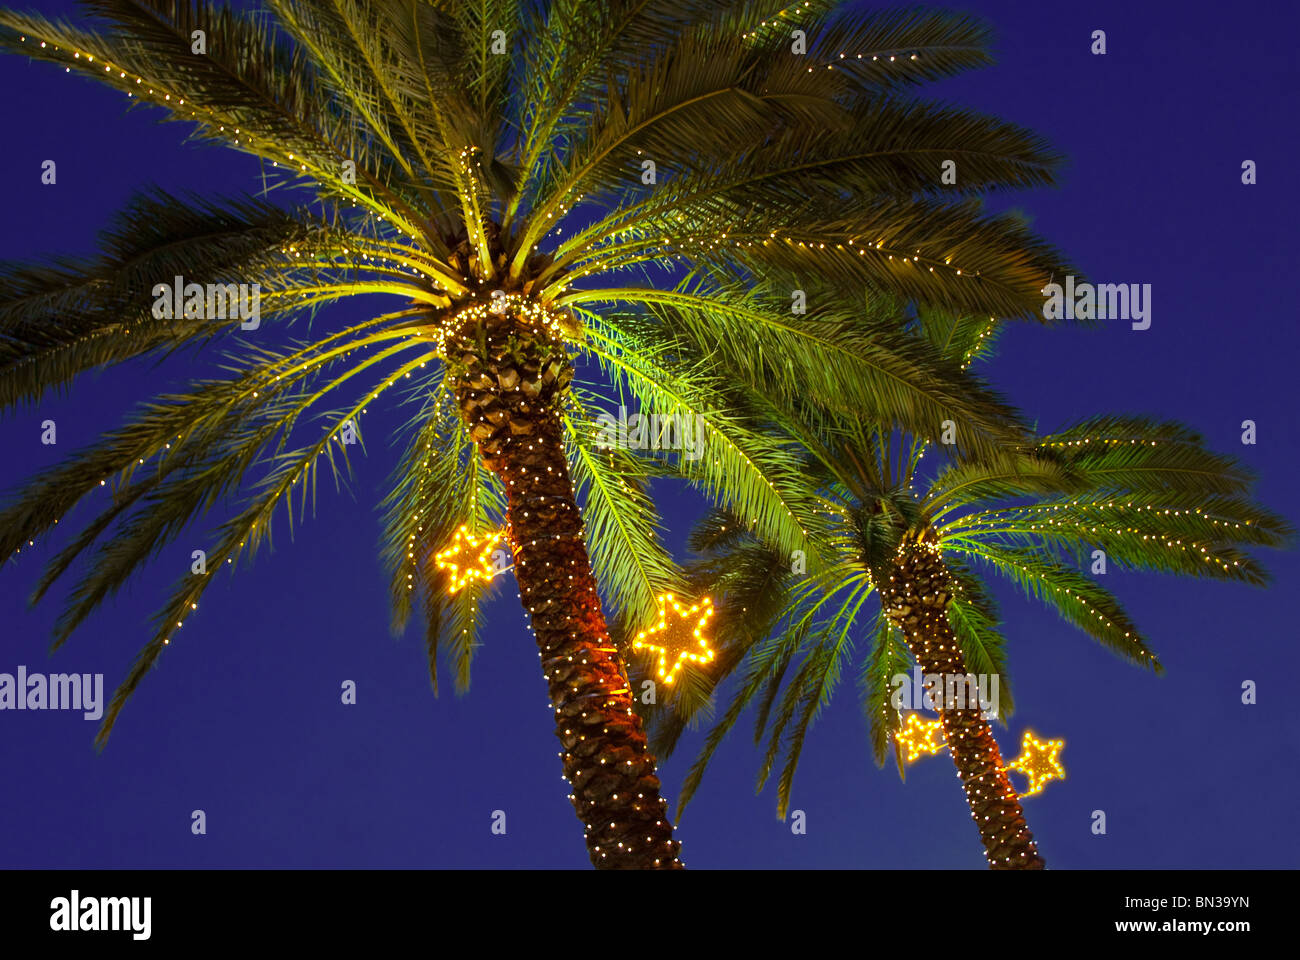 Palm Tree Christmas Lights Stock Photos & Palm Tree